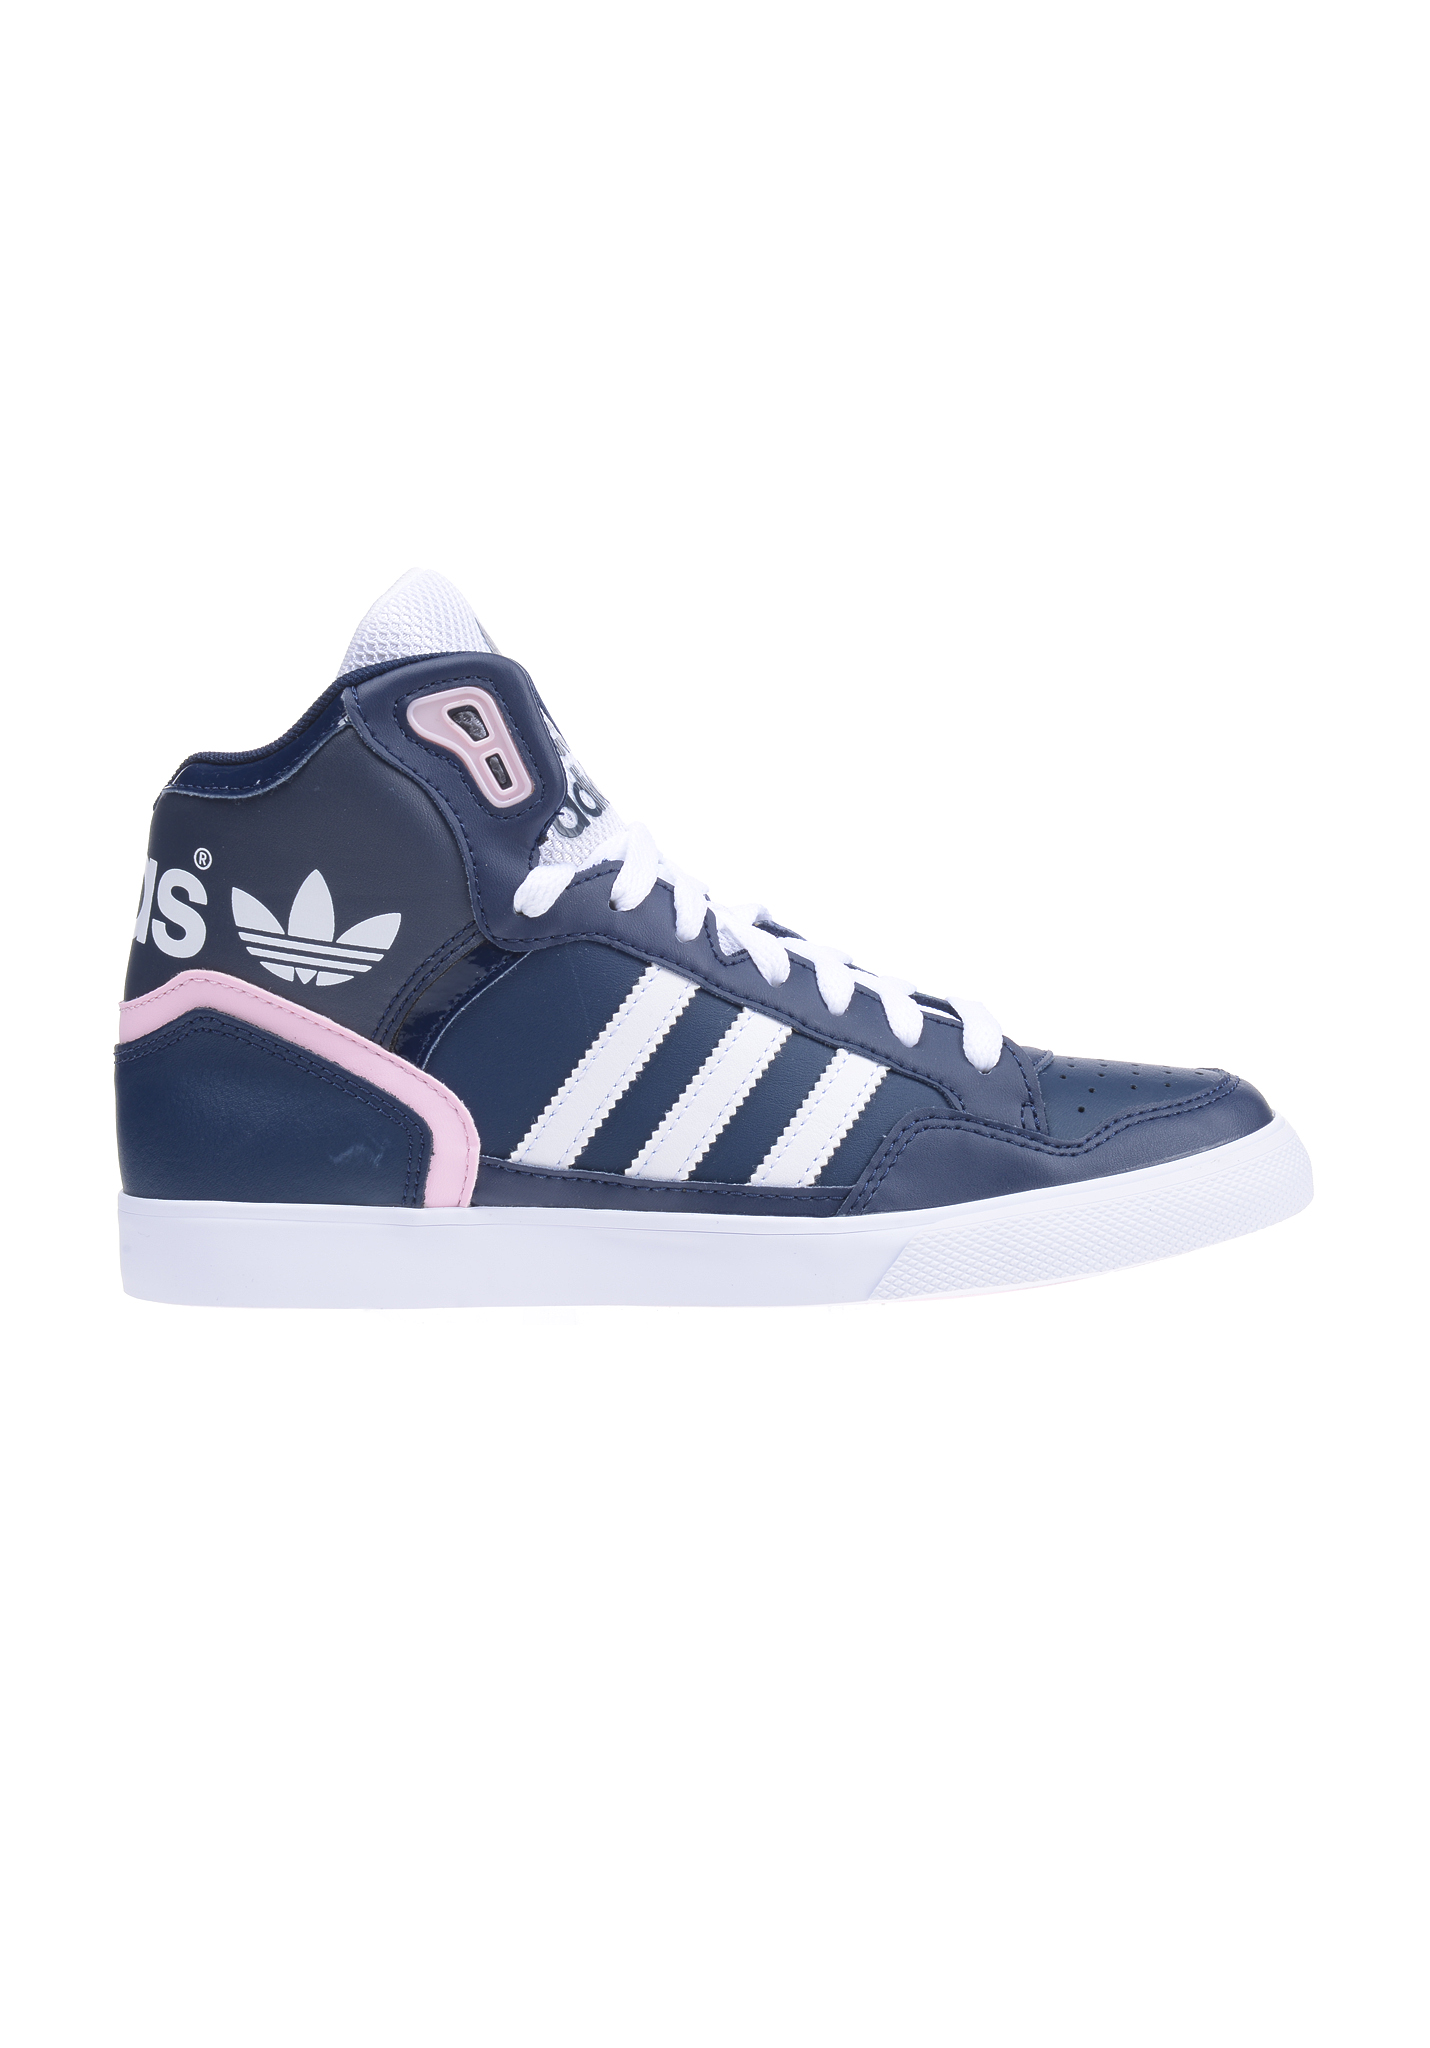 adidas extaball damen sneaker turnschuhe freizeit schuhe. Black Bedroom Furniture Sets. Home Design Ideas